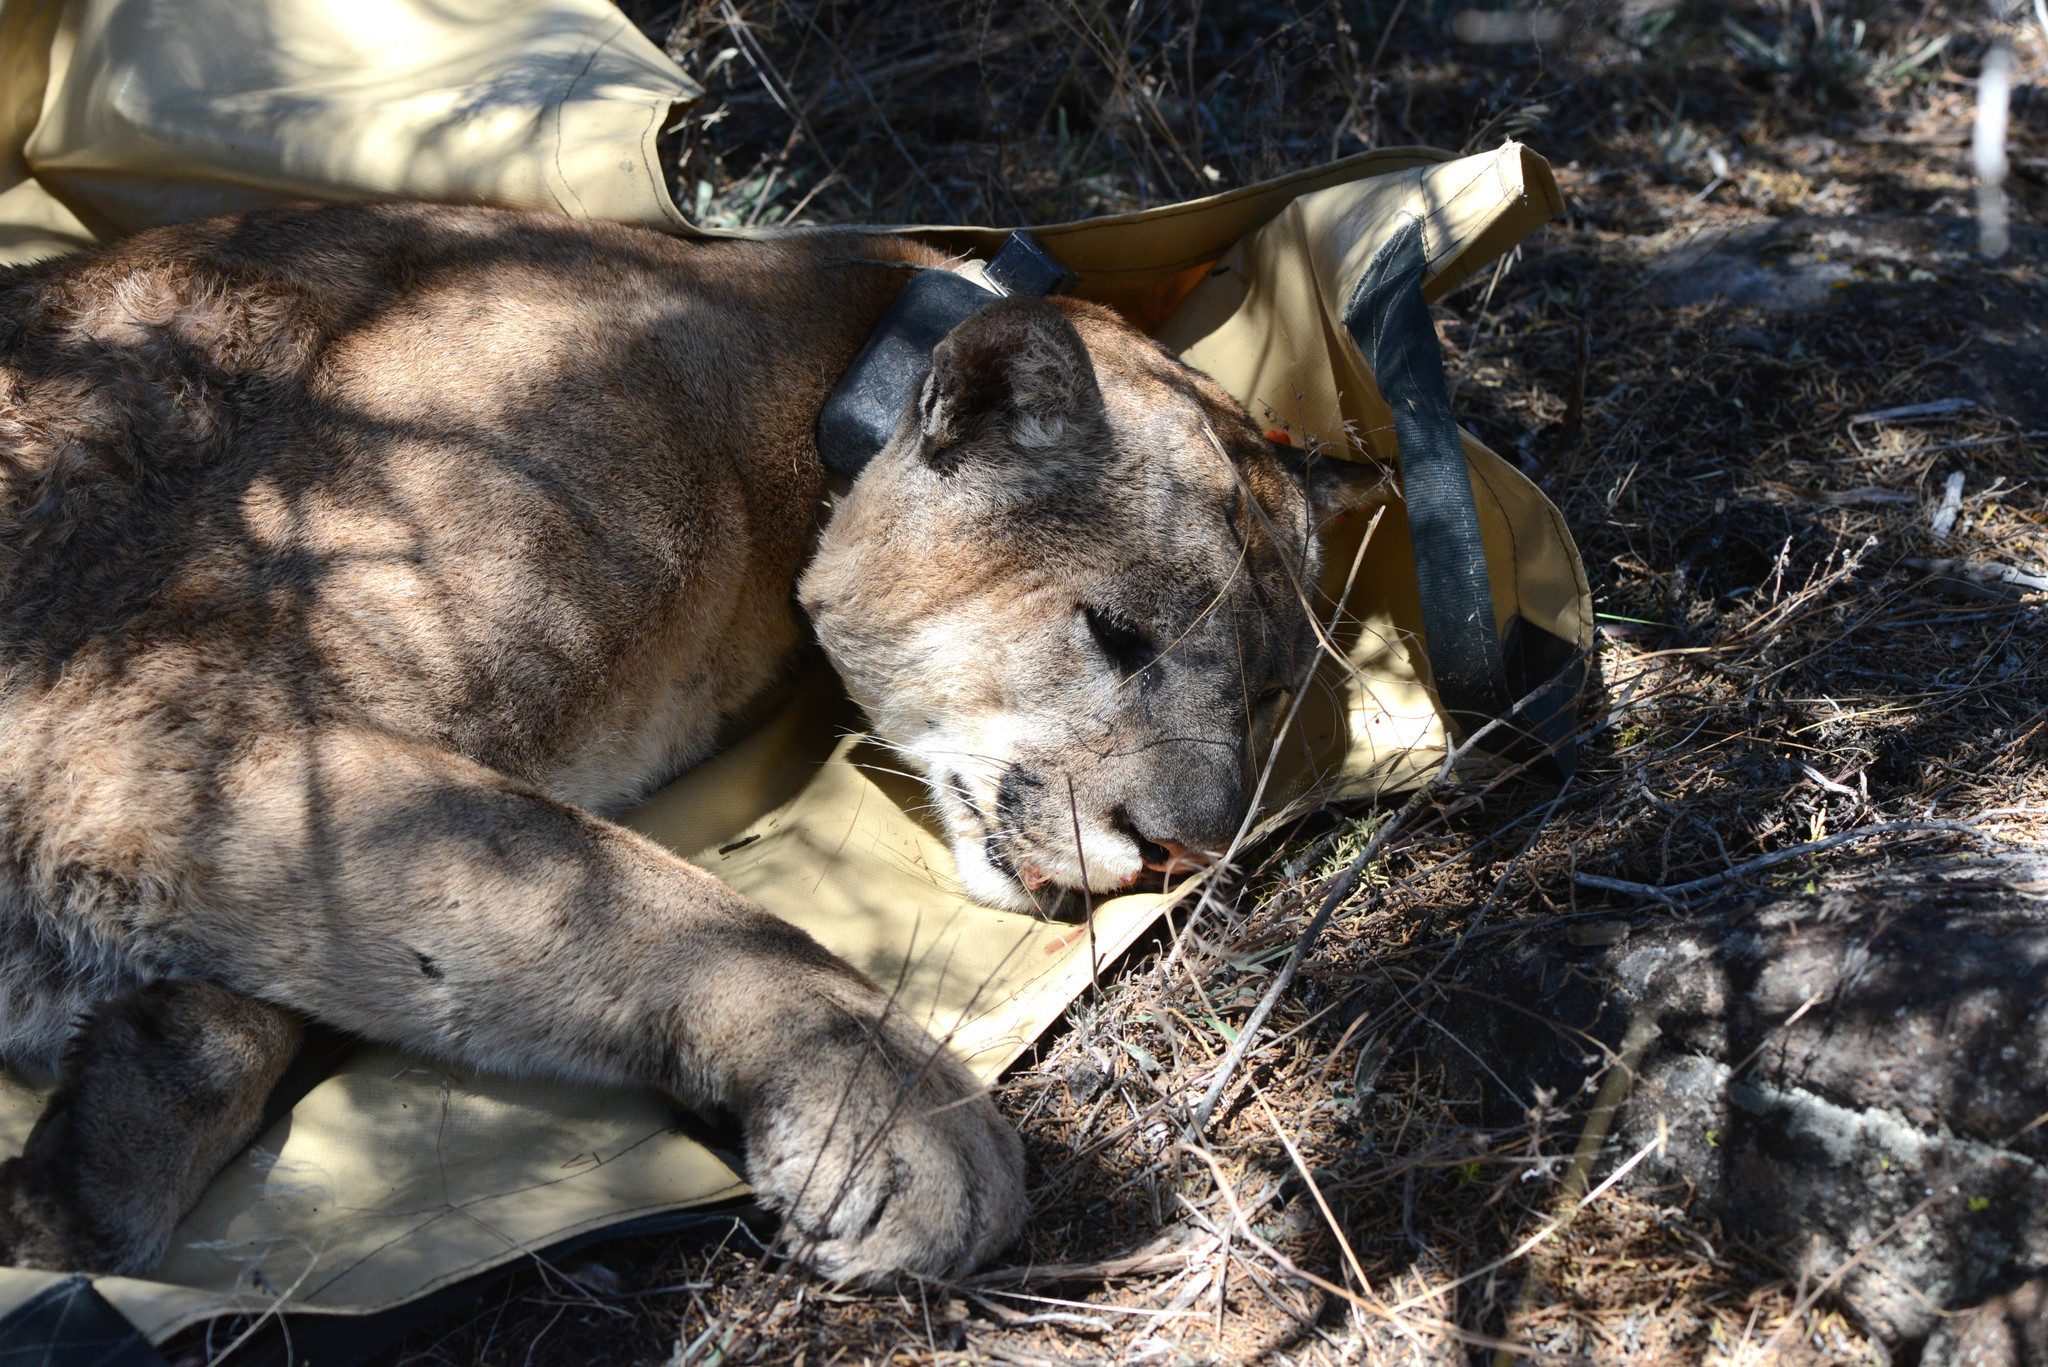 This mountain lion, known as No. 166, lives in Modoc National Forest and mainly feeds off wild horse